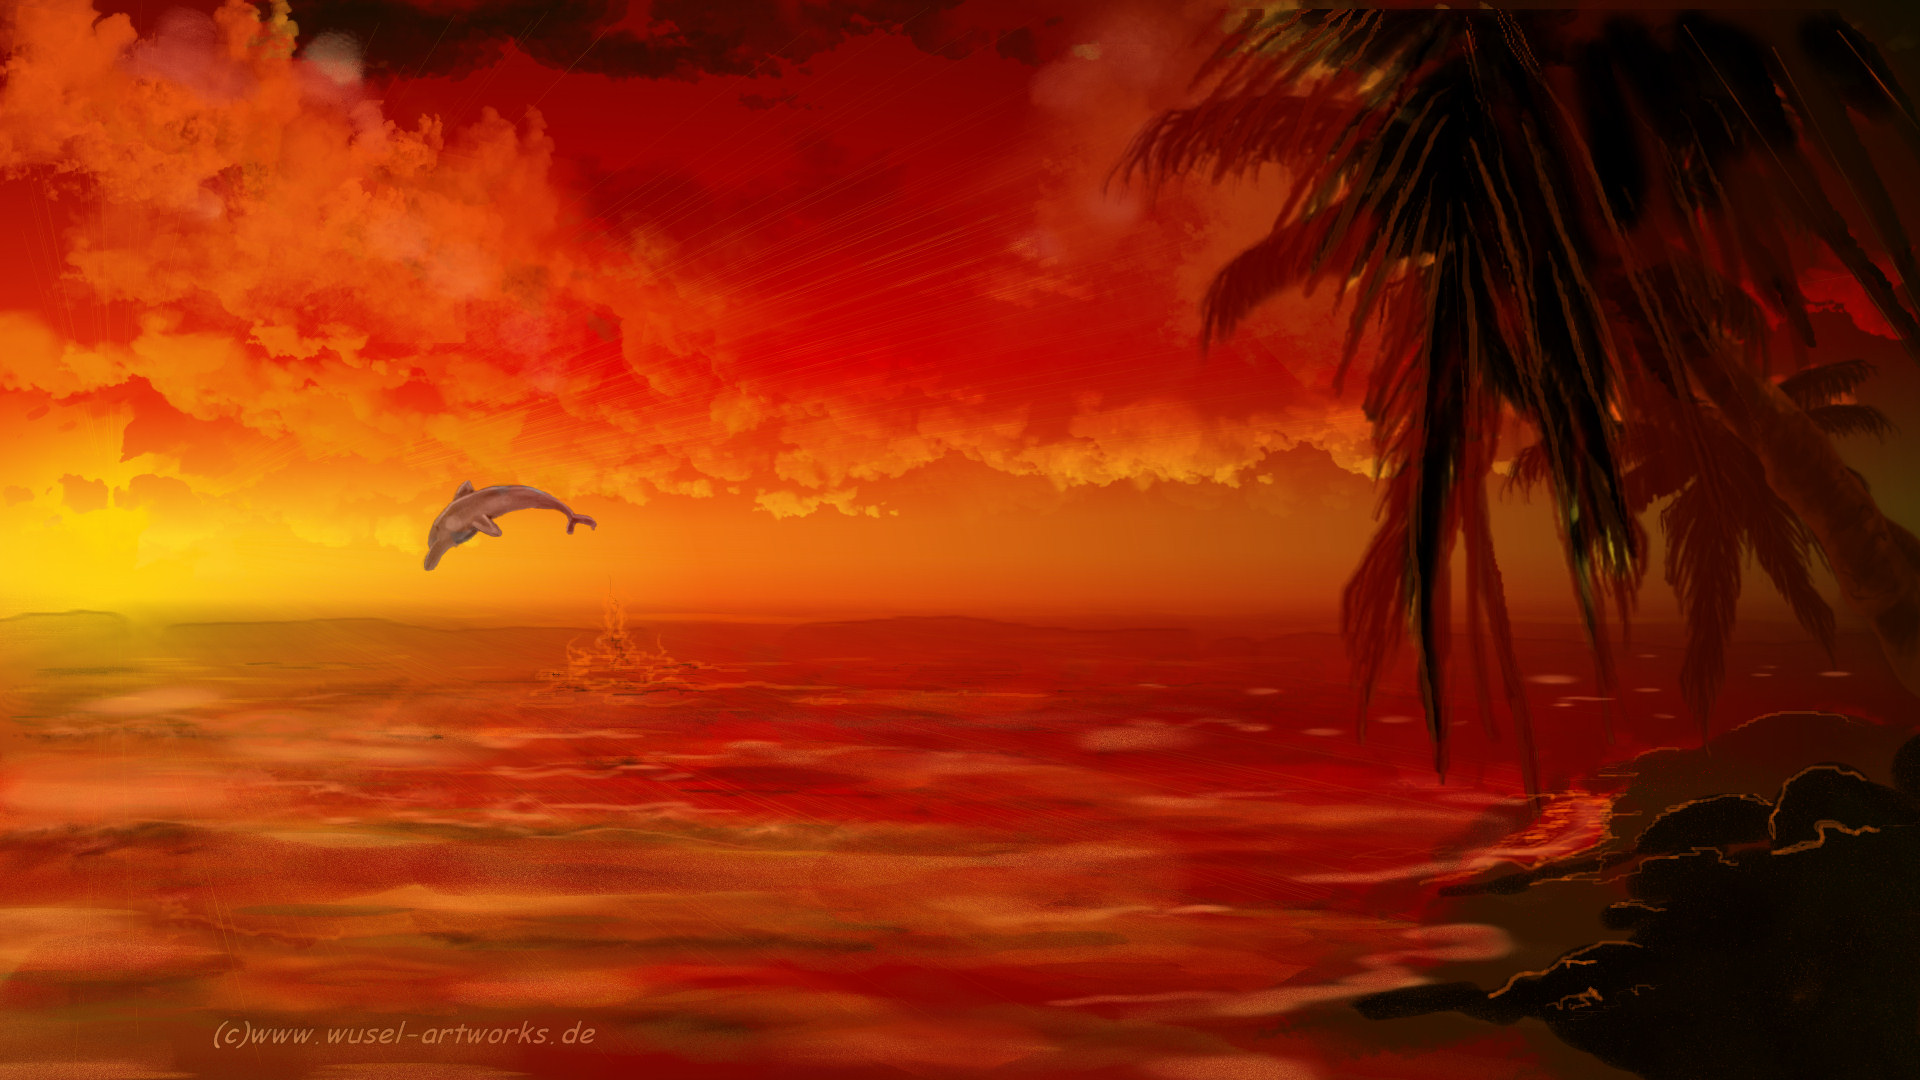 Dolphins Dolphin Hd Widescreen Beach 389388 With Resolutions 1920 1920x1080